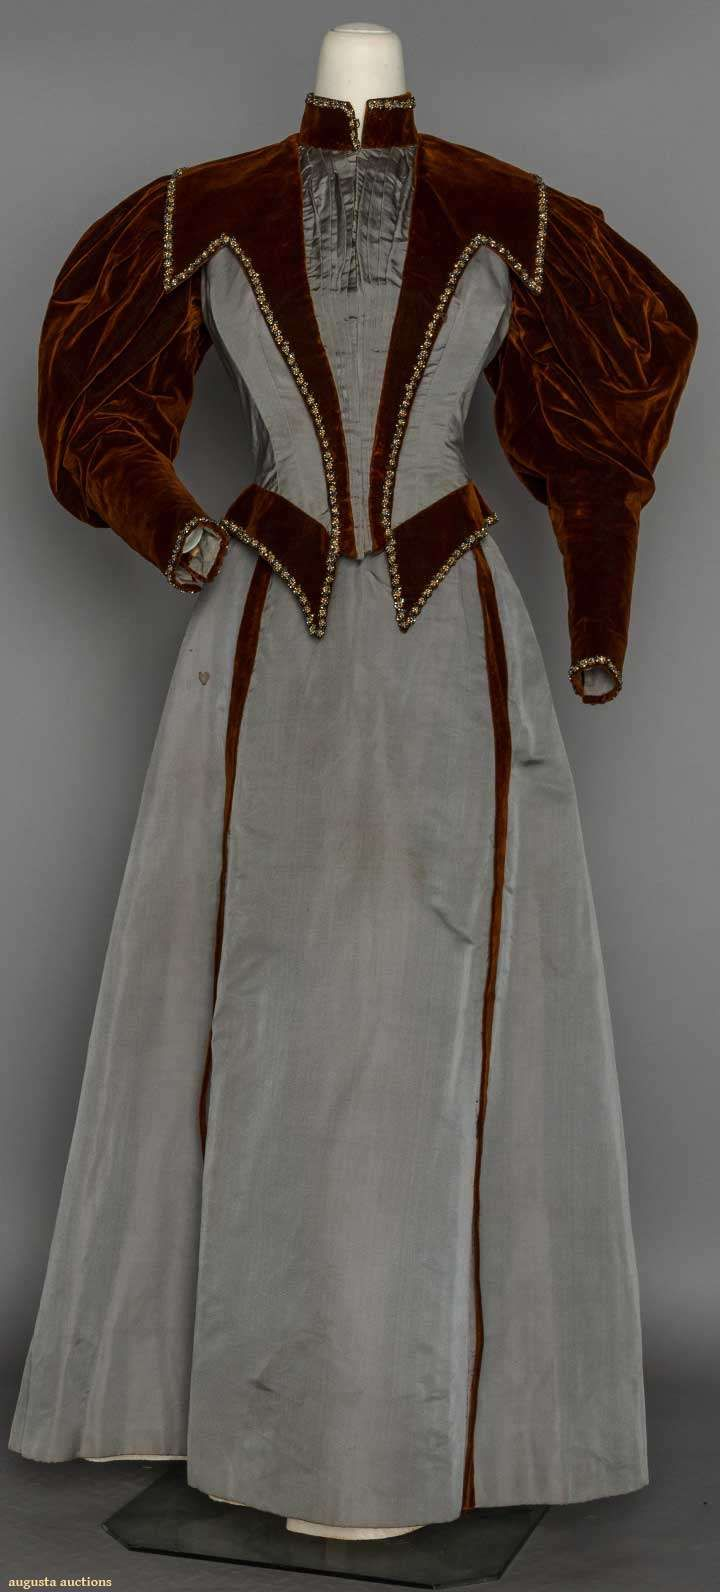 Two-tone Afternoon Dress, C. 1895, Augusta Auctions, November 11, 2015 NYC